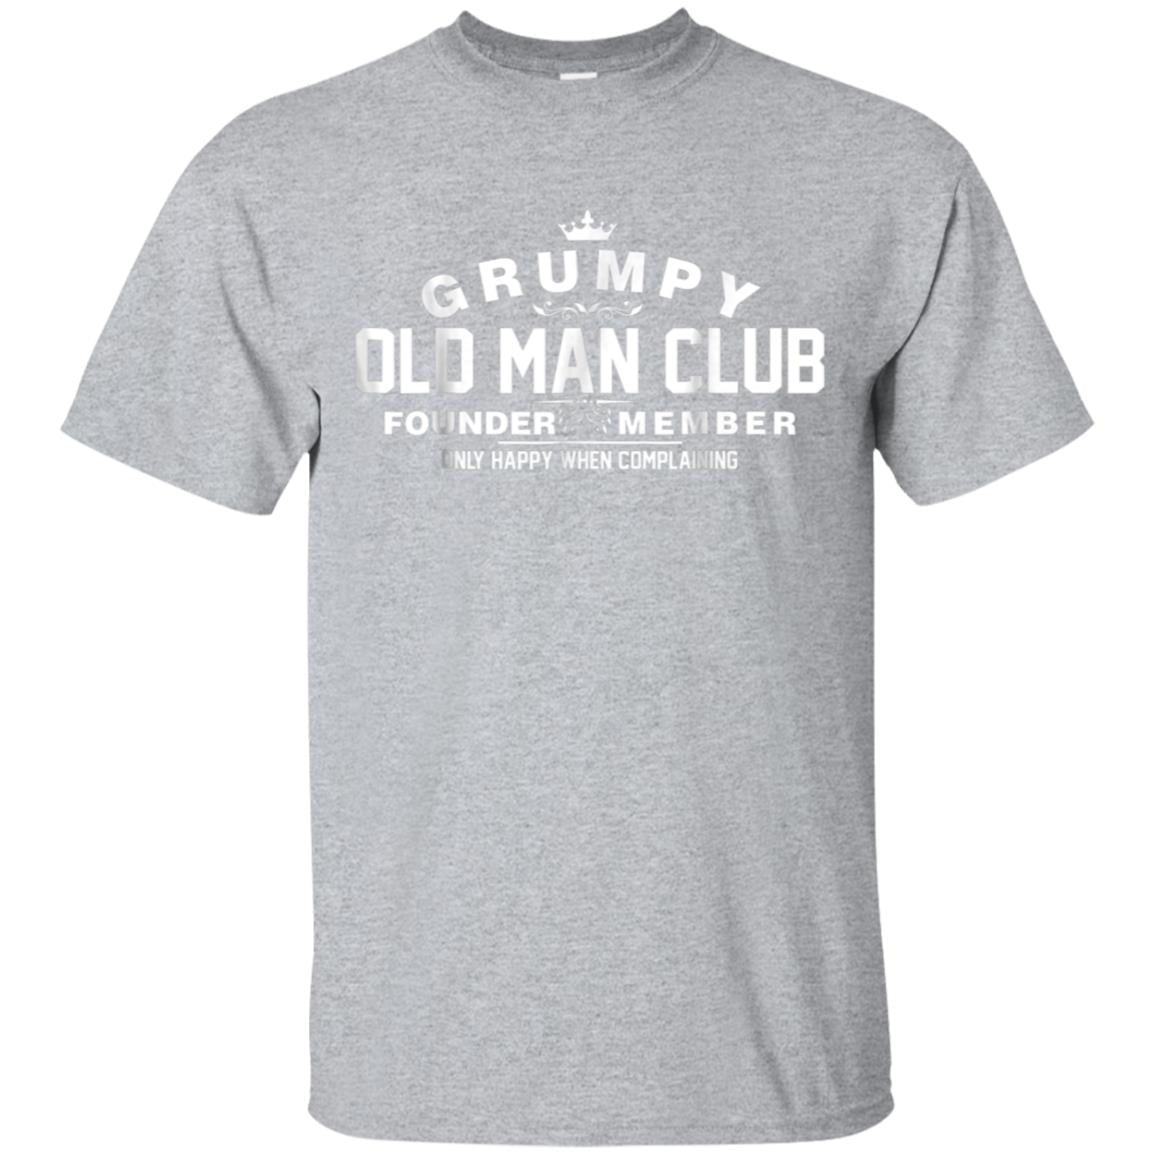 Grumpy Old Man Club T-Shirt TShirt 99promocode